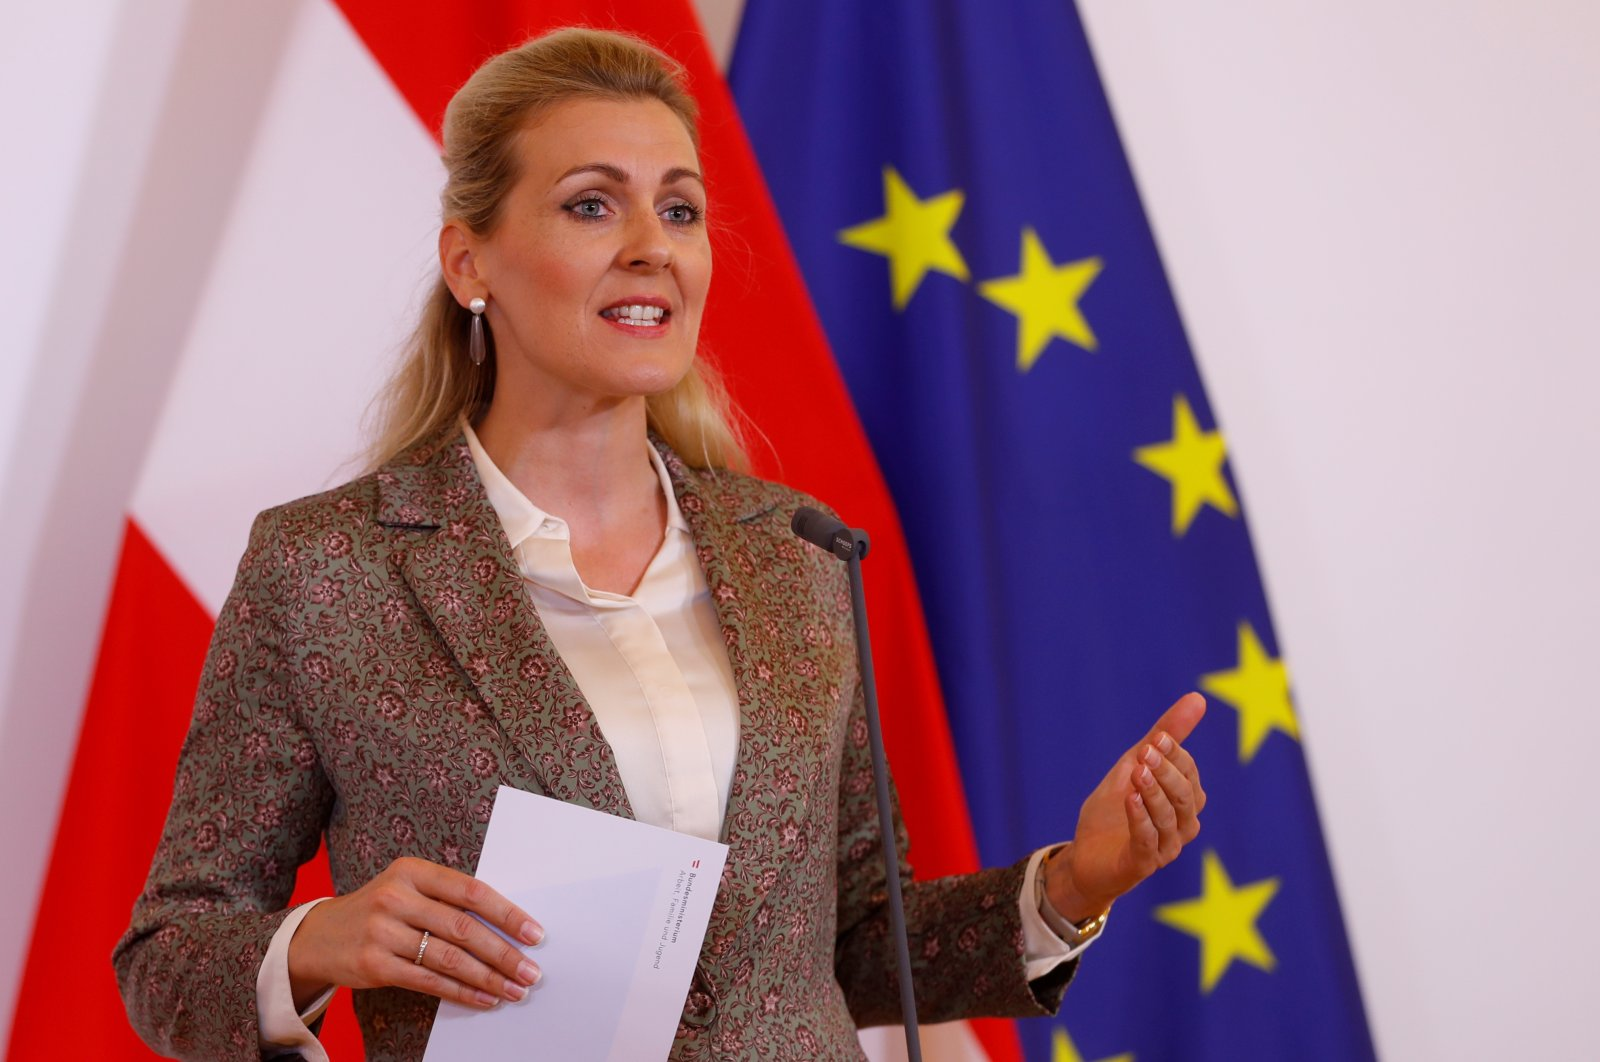 Austrian Family Minister Christine Aschbacher talks to the media during the coronavirus disease (COVID-19) outbreak in Vienna, Austria, June 15, 2020. (Reuters Photo)